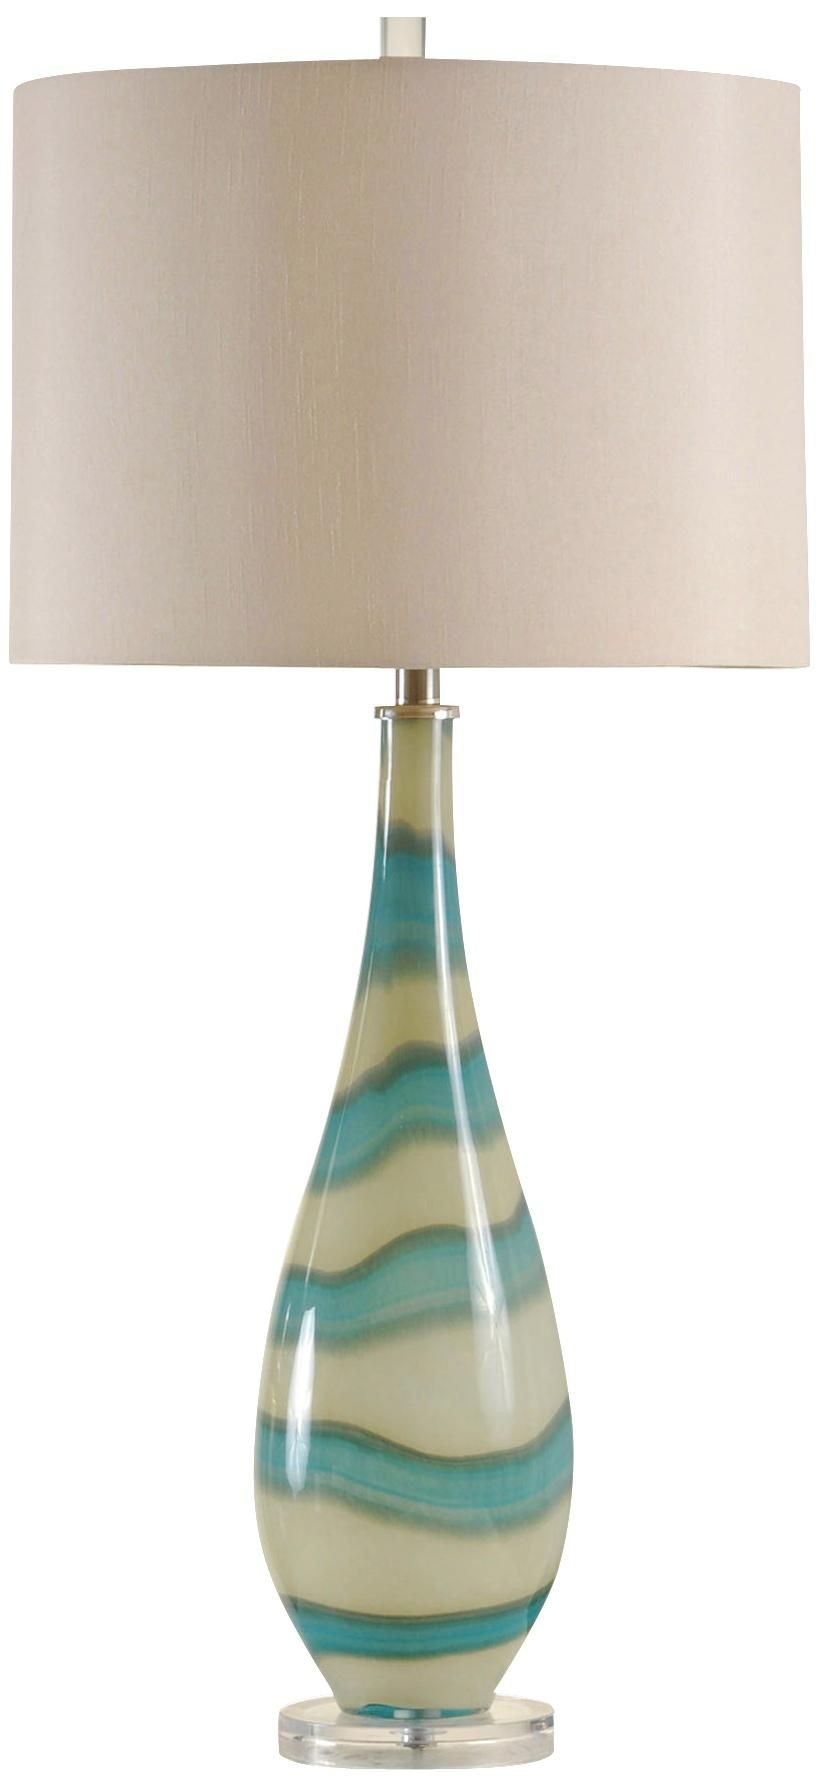 amelie turquoise and sand glass contemporary table lamp home accent lamps portland kitchen dining set small white night inch round tablecloth gloss console goods desk entryway